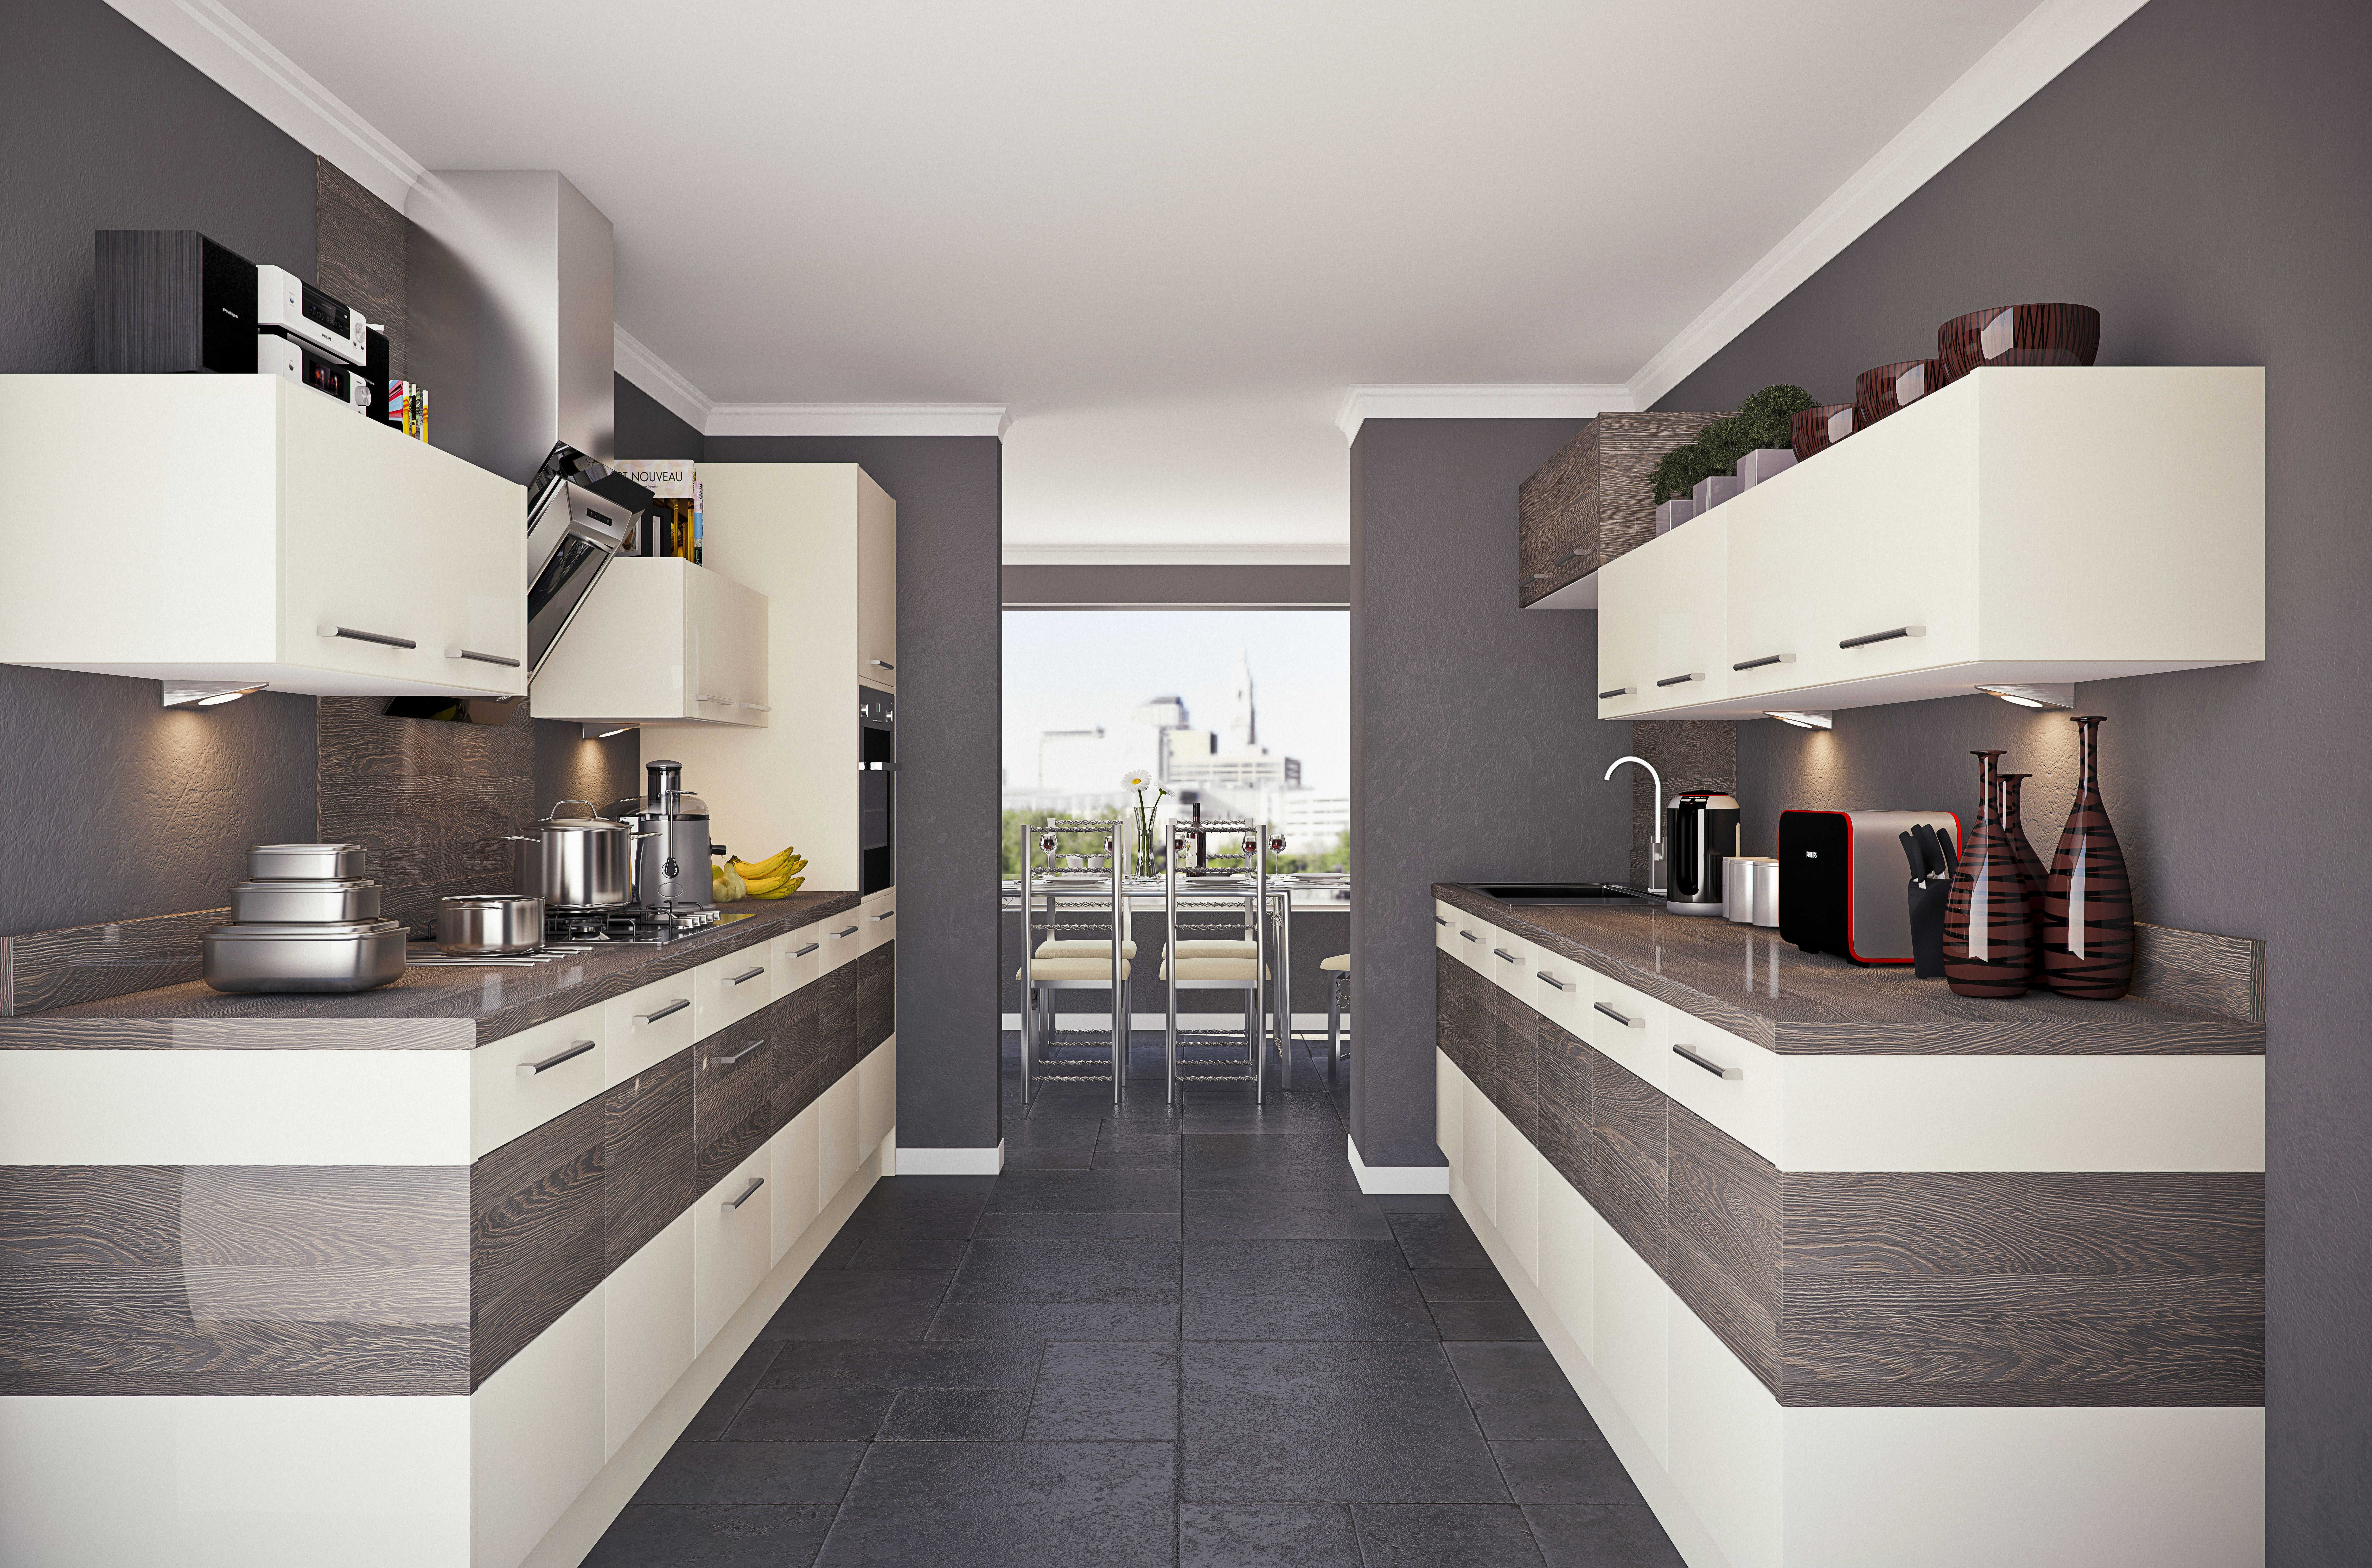 Empson & Mali Wenge from £4,456, from Wren Kitchens